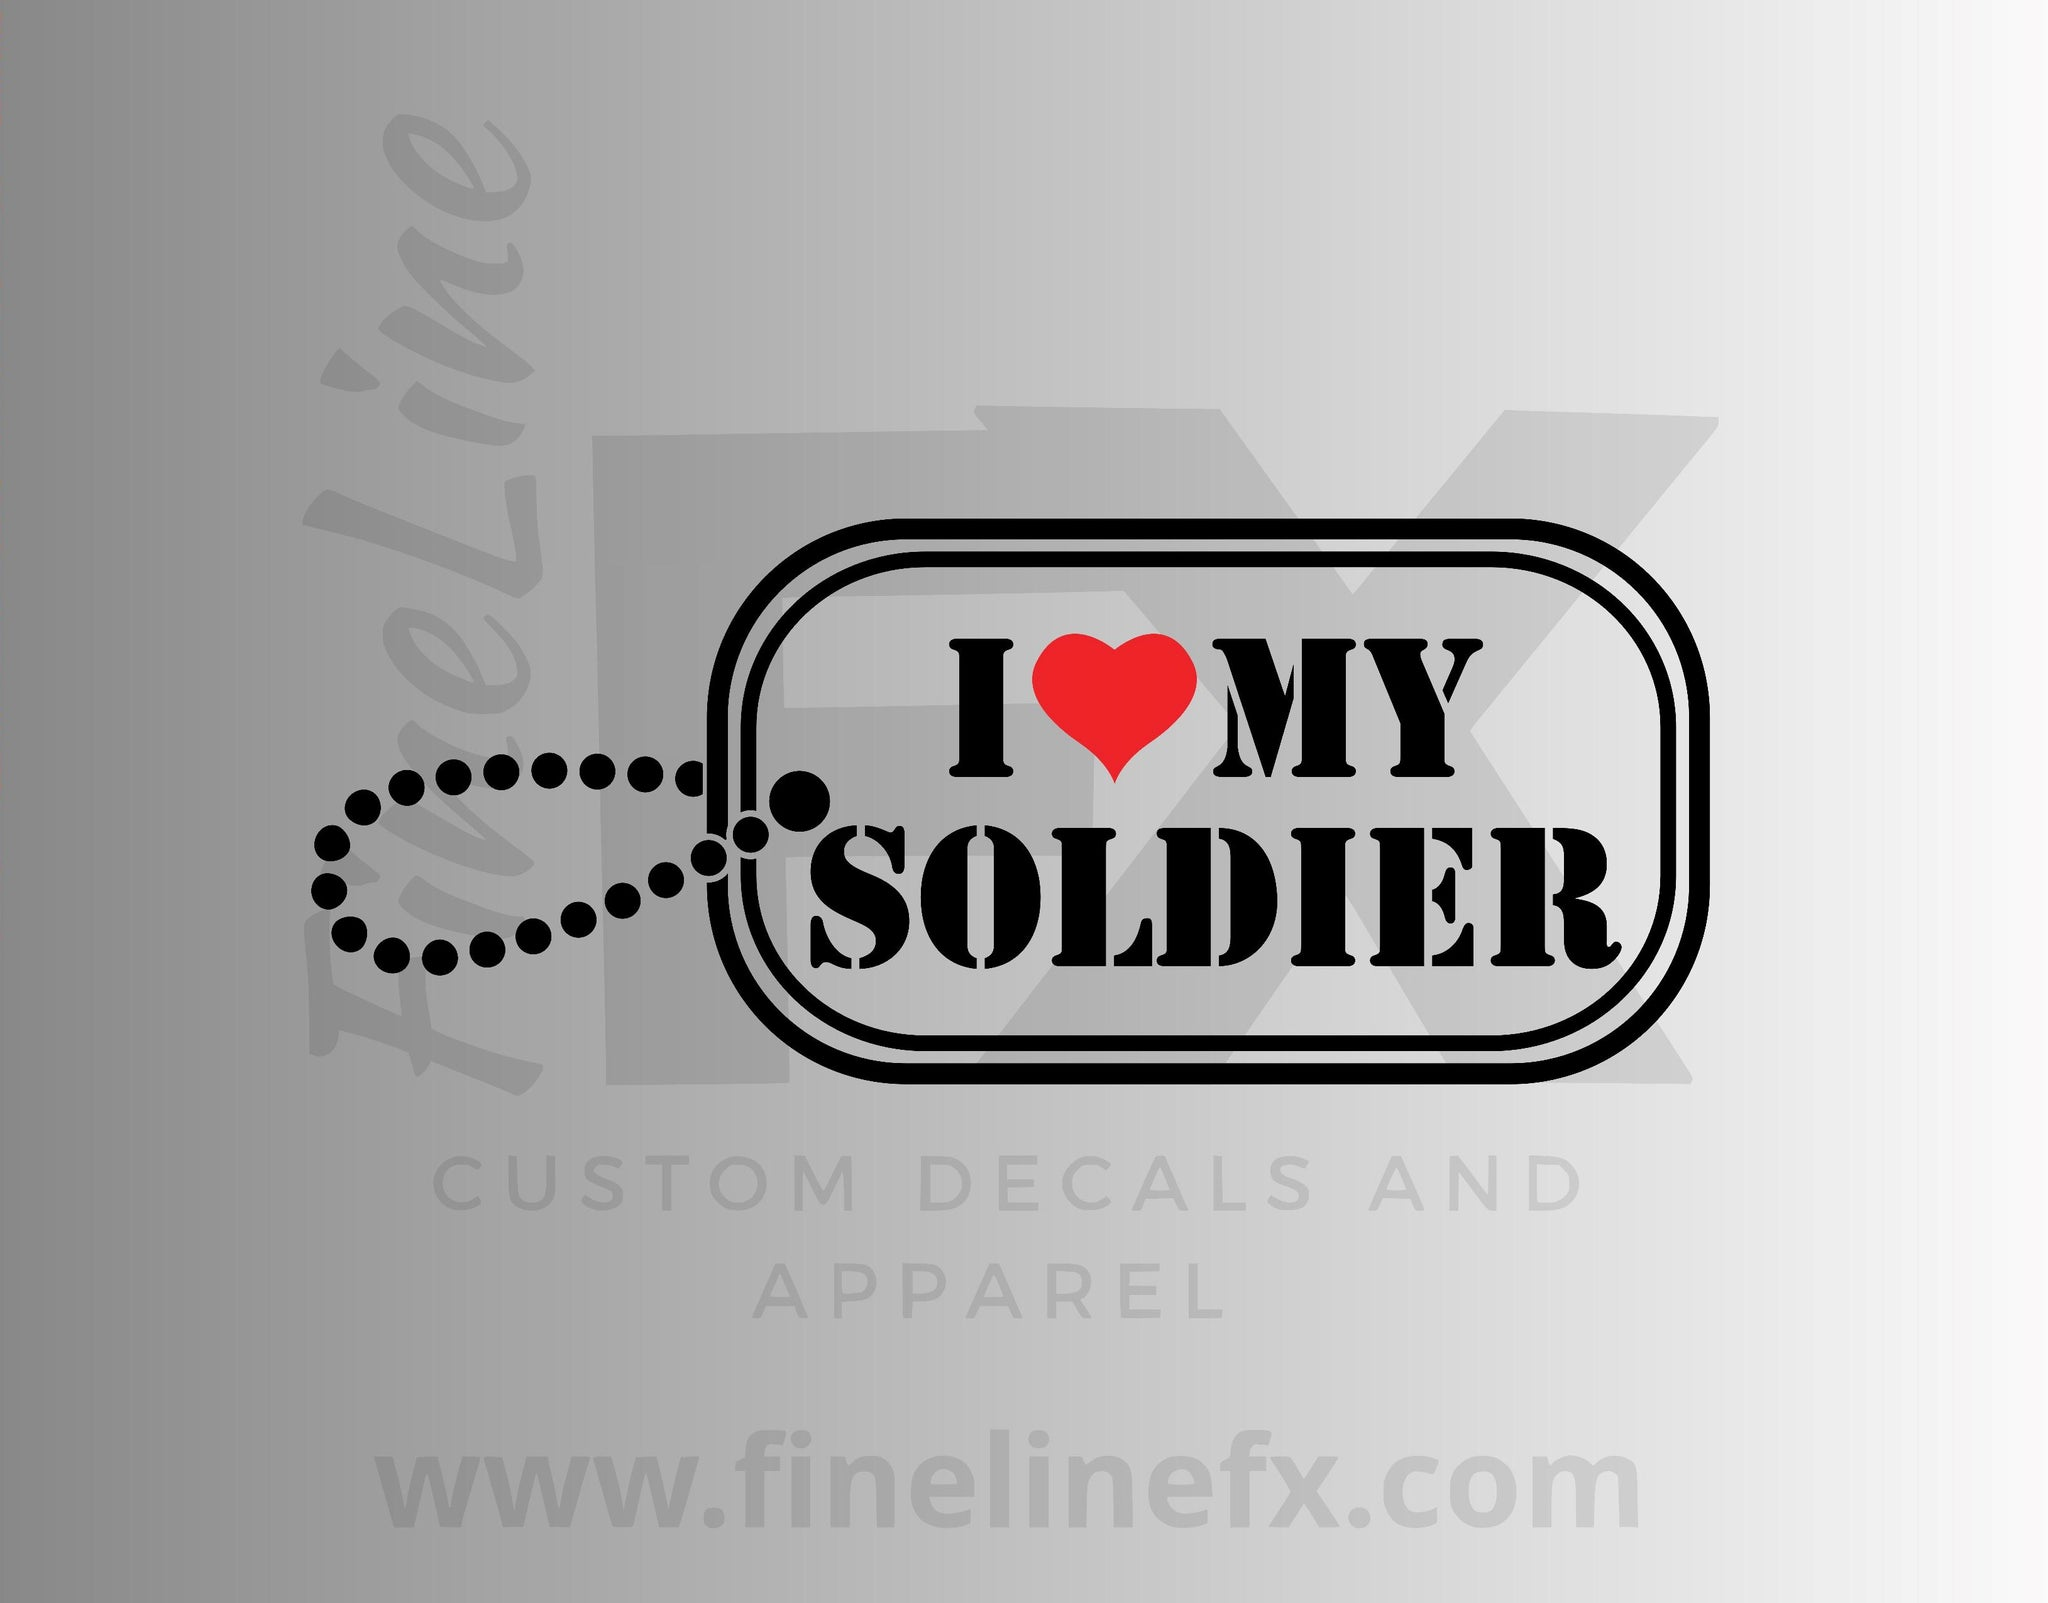 I Love My Soldier Military Dog Tag Vinyl Decal Sticker